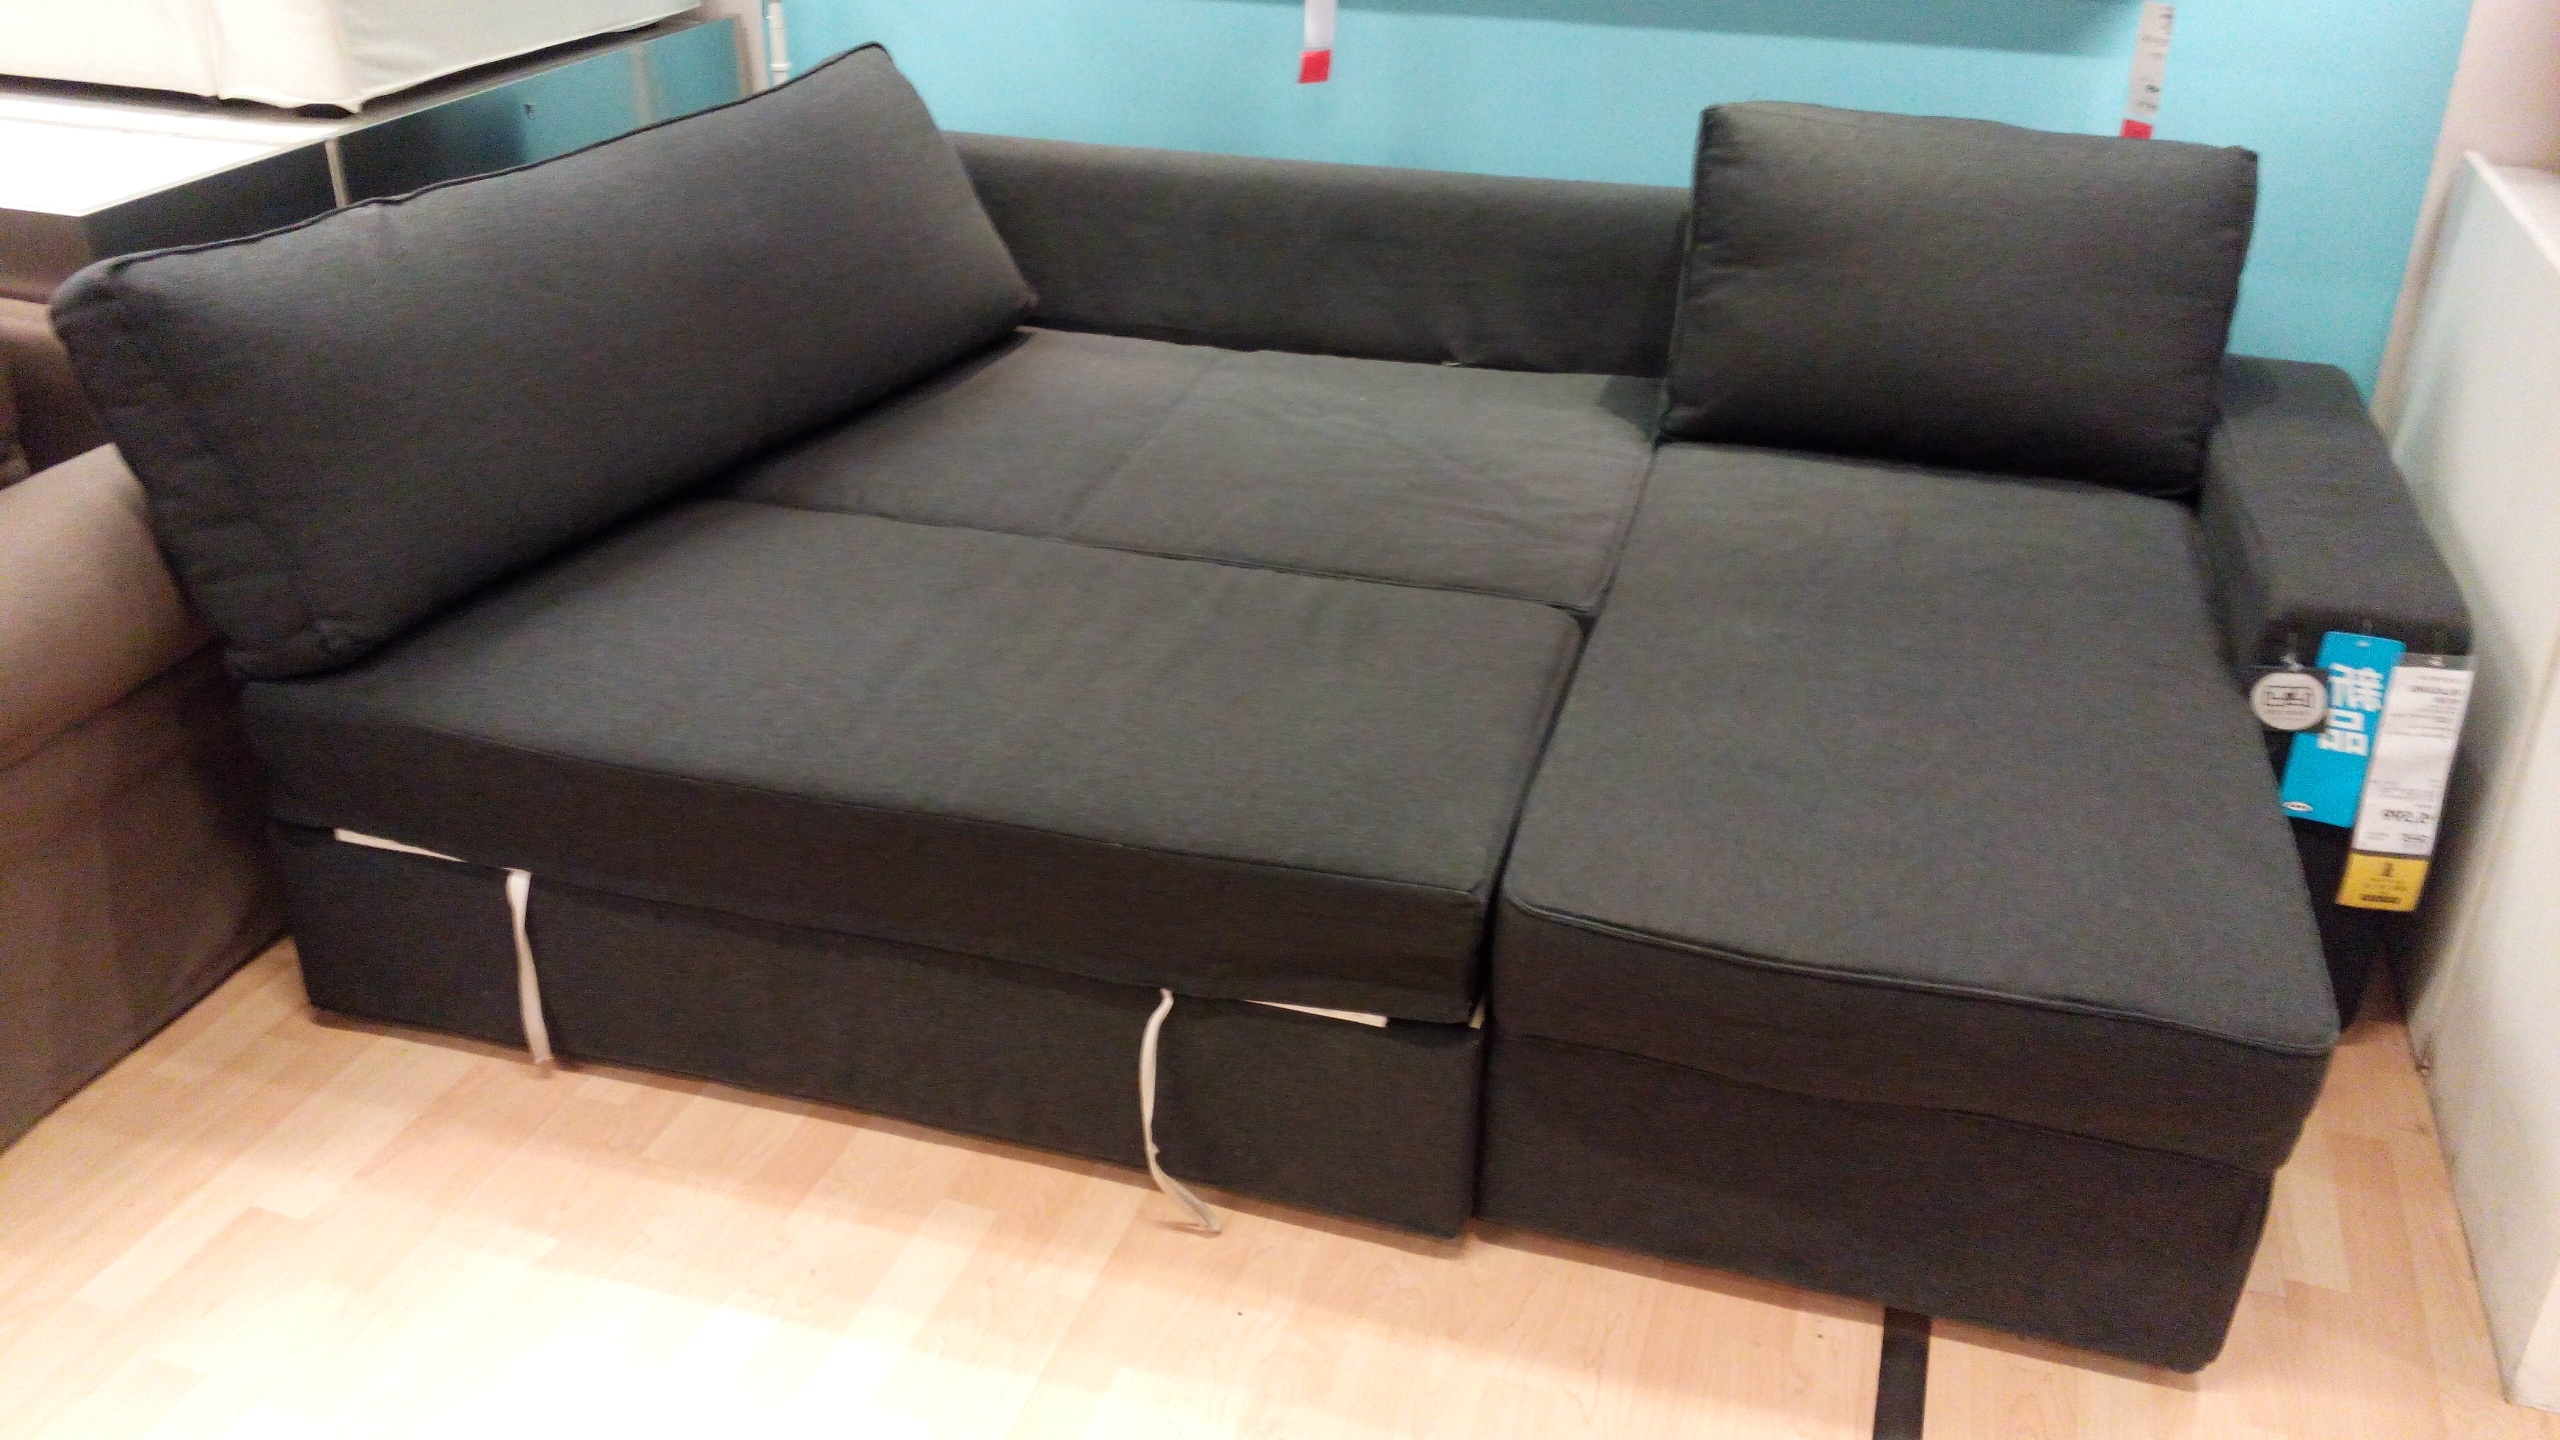 Well Known Ikea Vilasund And Backabro Review – Return Of The Sofa Bed Clones! Inside Ikea Sofa Beds With Chaise (View 15 of 15)